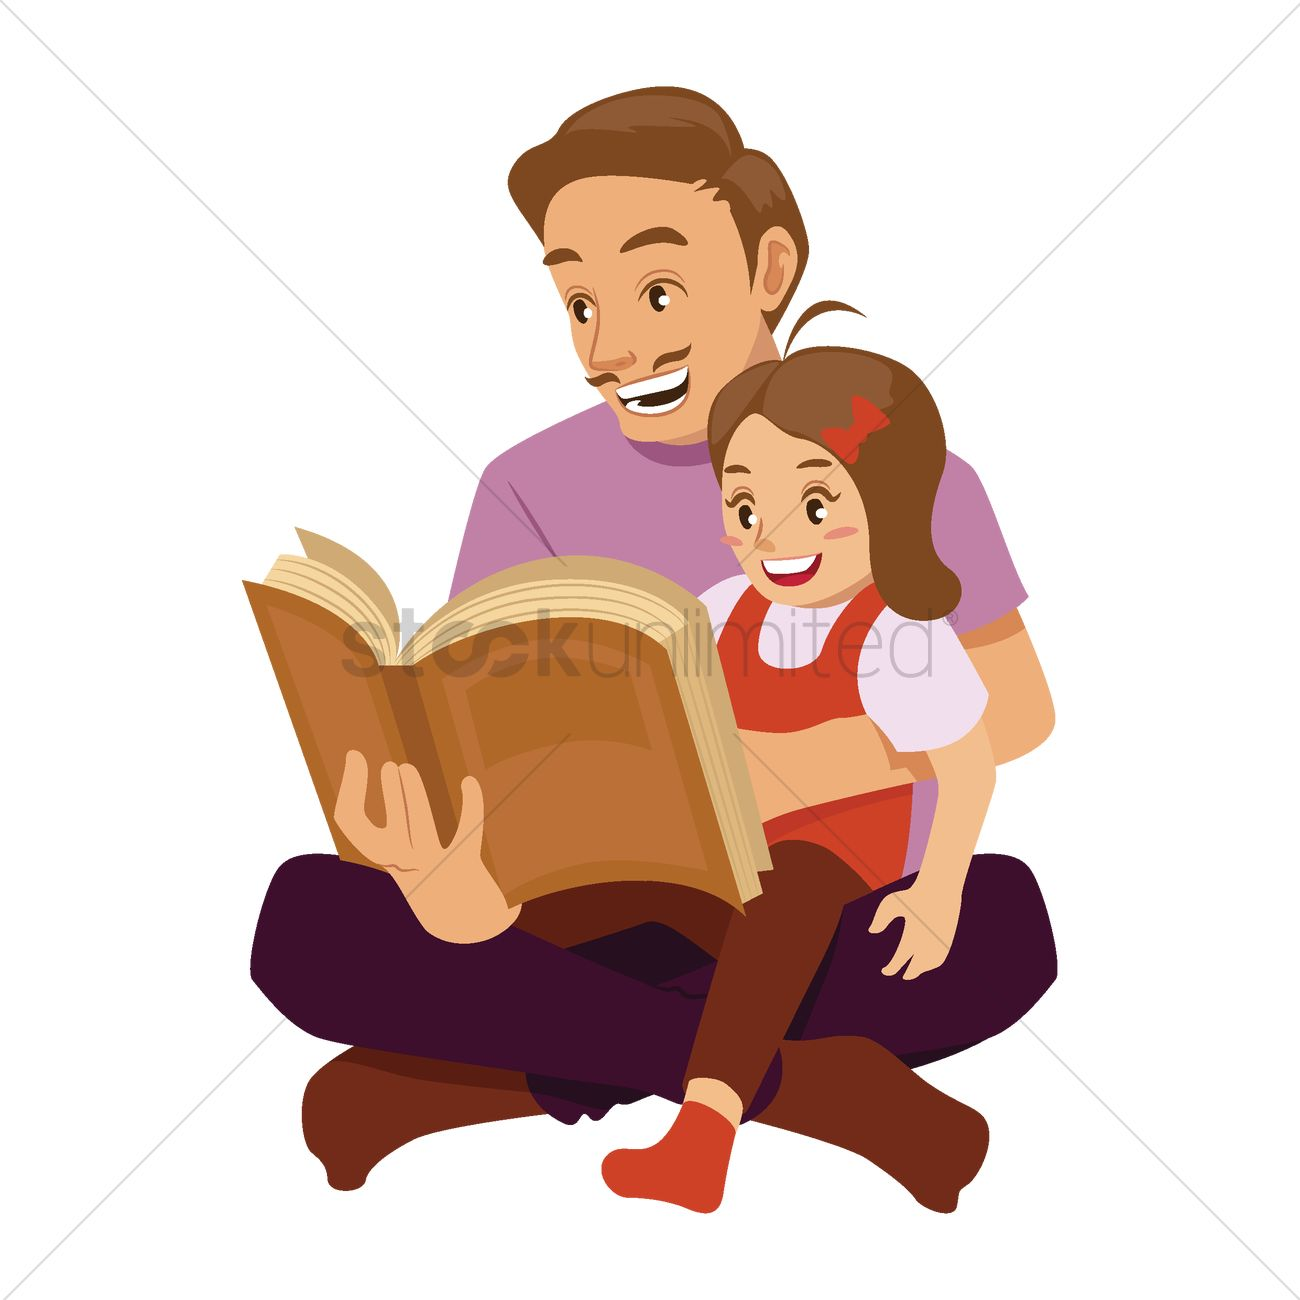 father and daughter clipart at getdrawings com free for personal rh getdrawings com mother father and daughter clipart mother father and daughter clipart